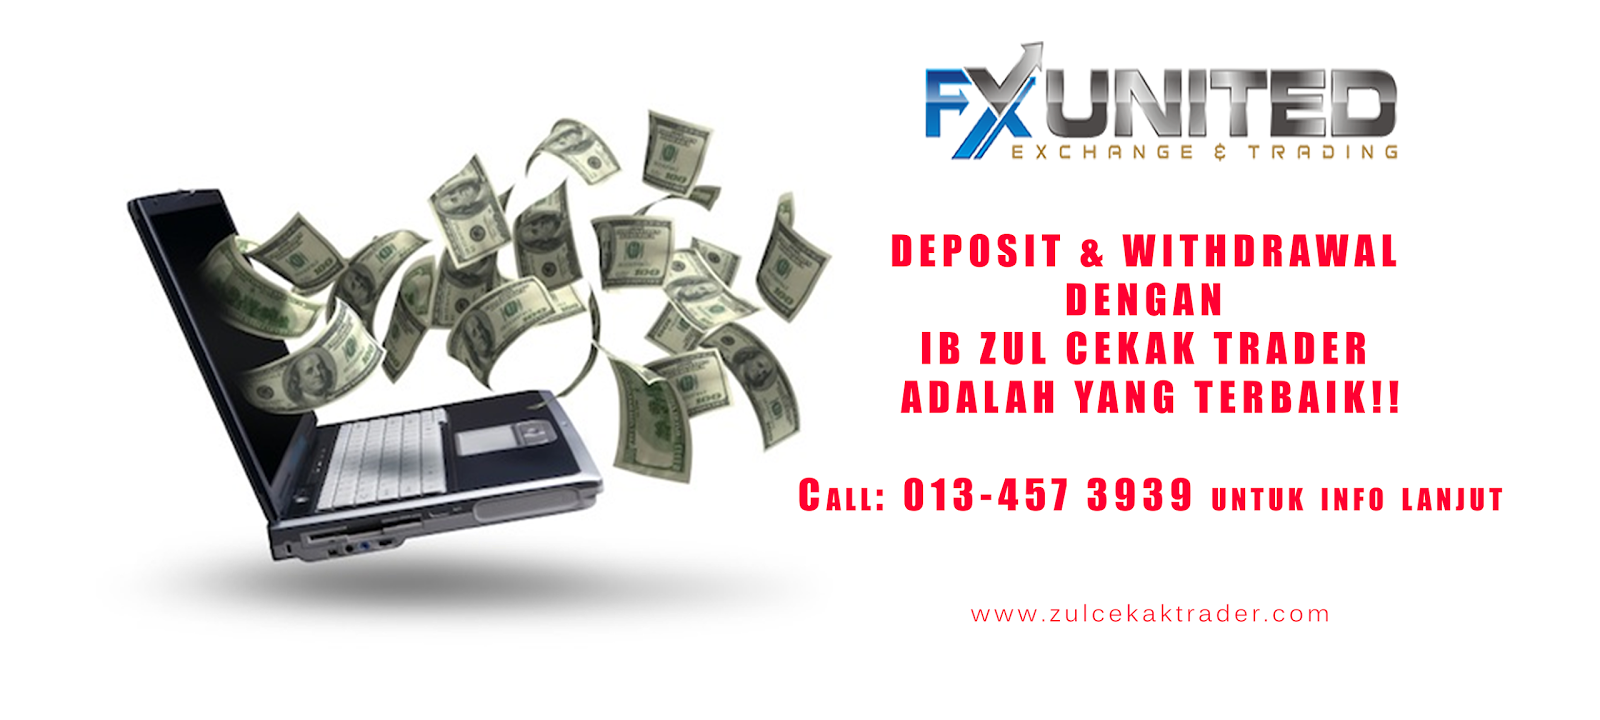 Best time to trade forex in malaysia